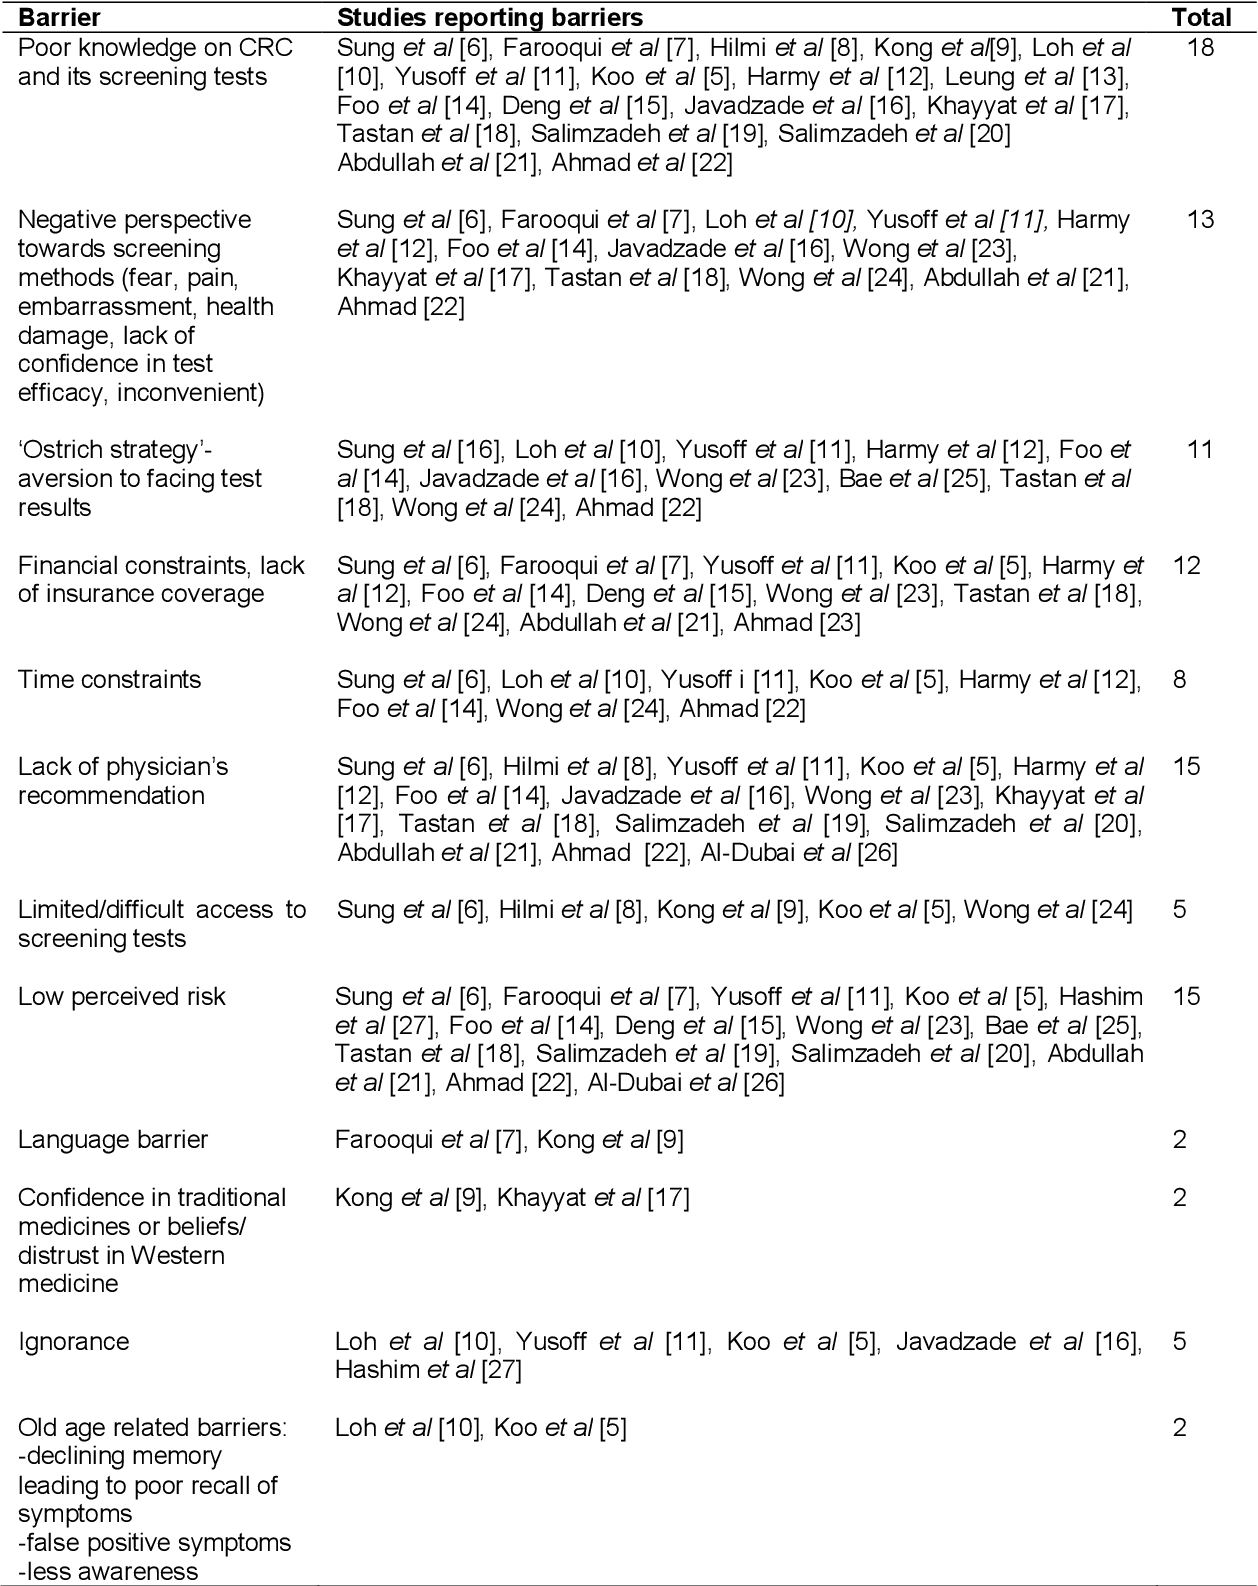 Pdf Barriers To Colorectal Cancer Screening In Asia A Systematic Review Semantic Scholar